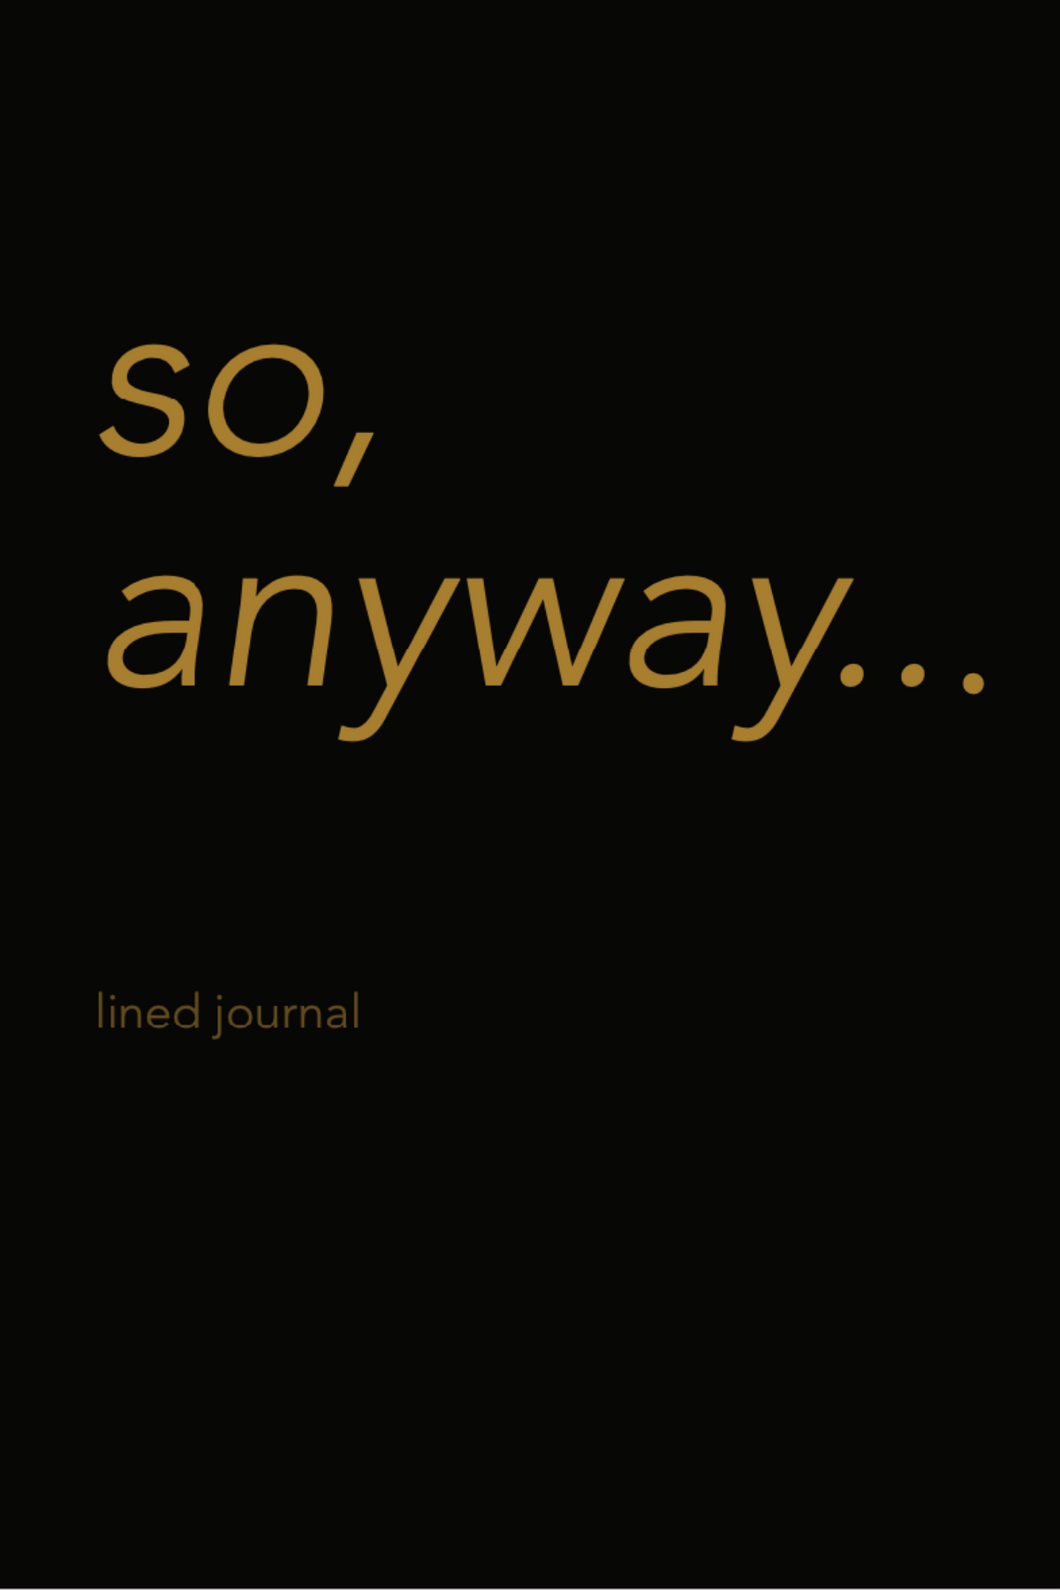 so, anyway... lined journal gift book